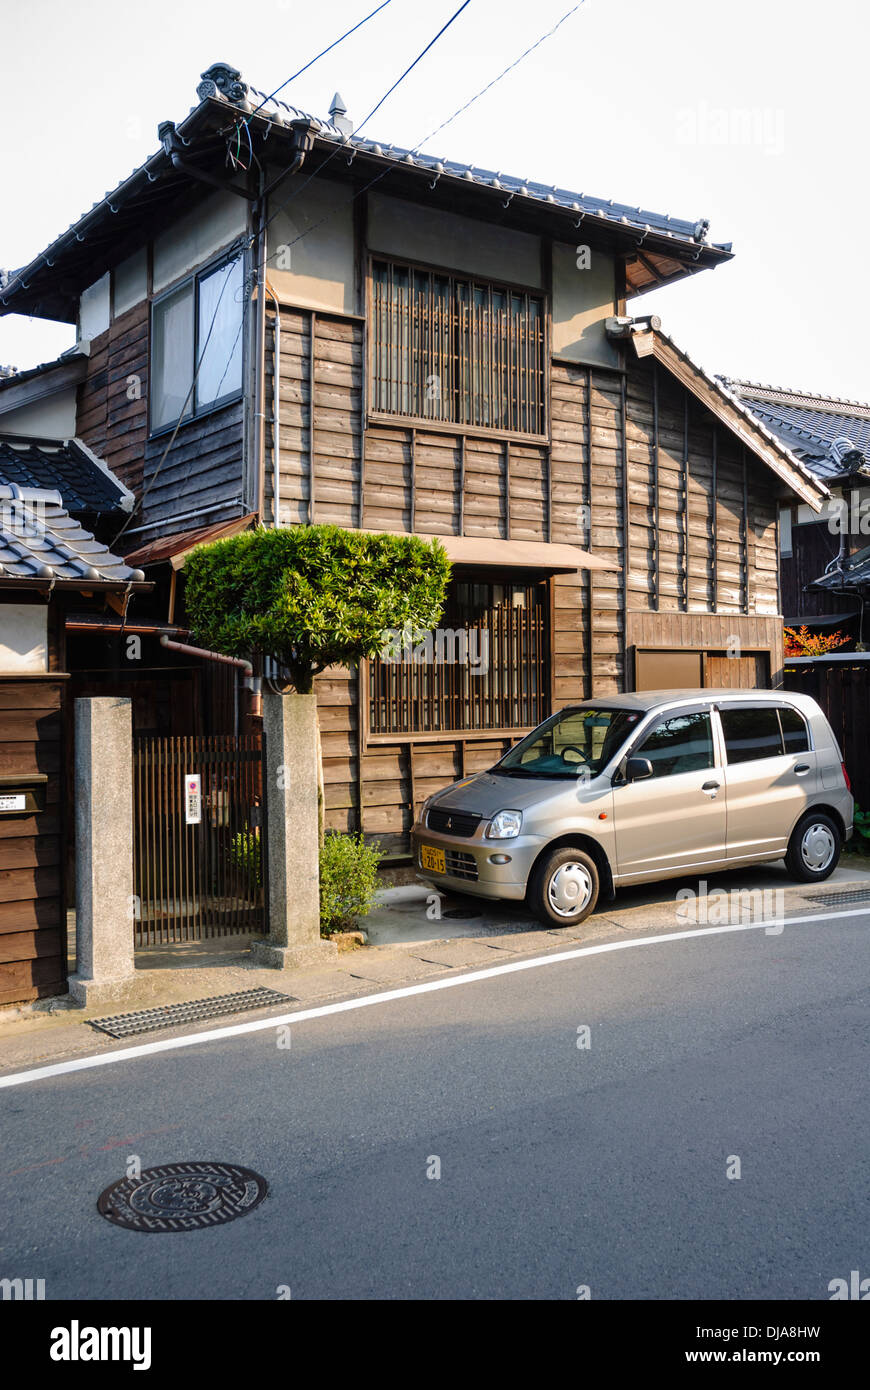 Traditional compact japanese home wooden house in japan with very small parking space and